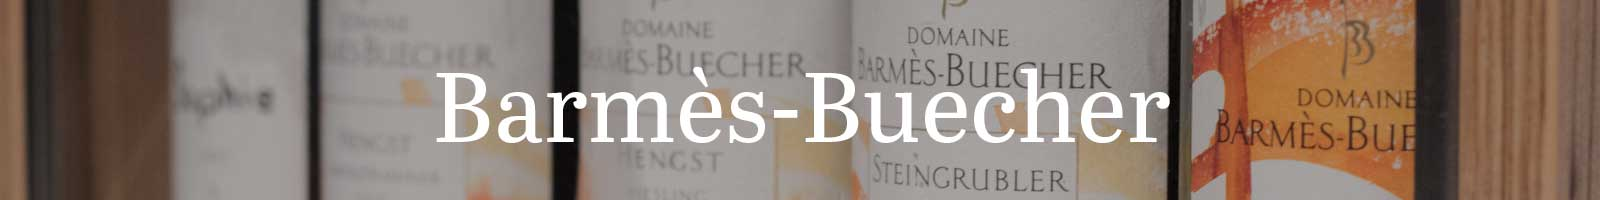 Essential Winemaker of France: Barmès-Buecher. ©Kevin Day/Opening a Bottle